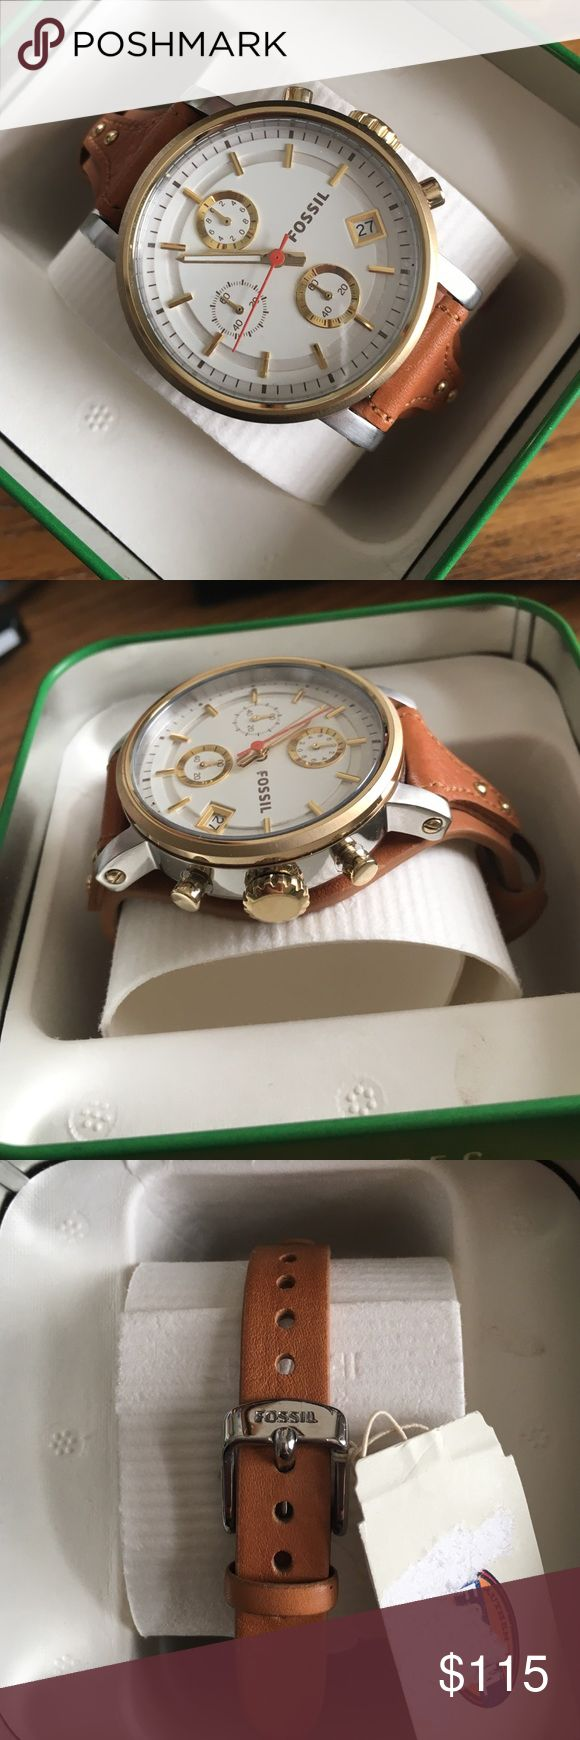 Fossil brown chronograph boyfriend watch NIBWT Fossil boyfriend watch with brown leather band. Buckle closure. Chronograph and date window on dial. Dial is gold tone and silver tone stainless steel. Case size 38mm. Style # ES3615. Open to offers but NO trades! New in box with tags attached! Fossil Accessories Watches